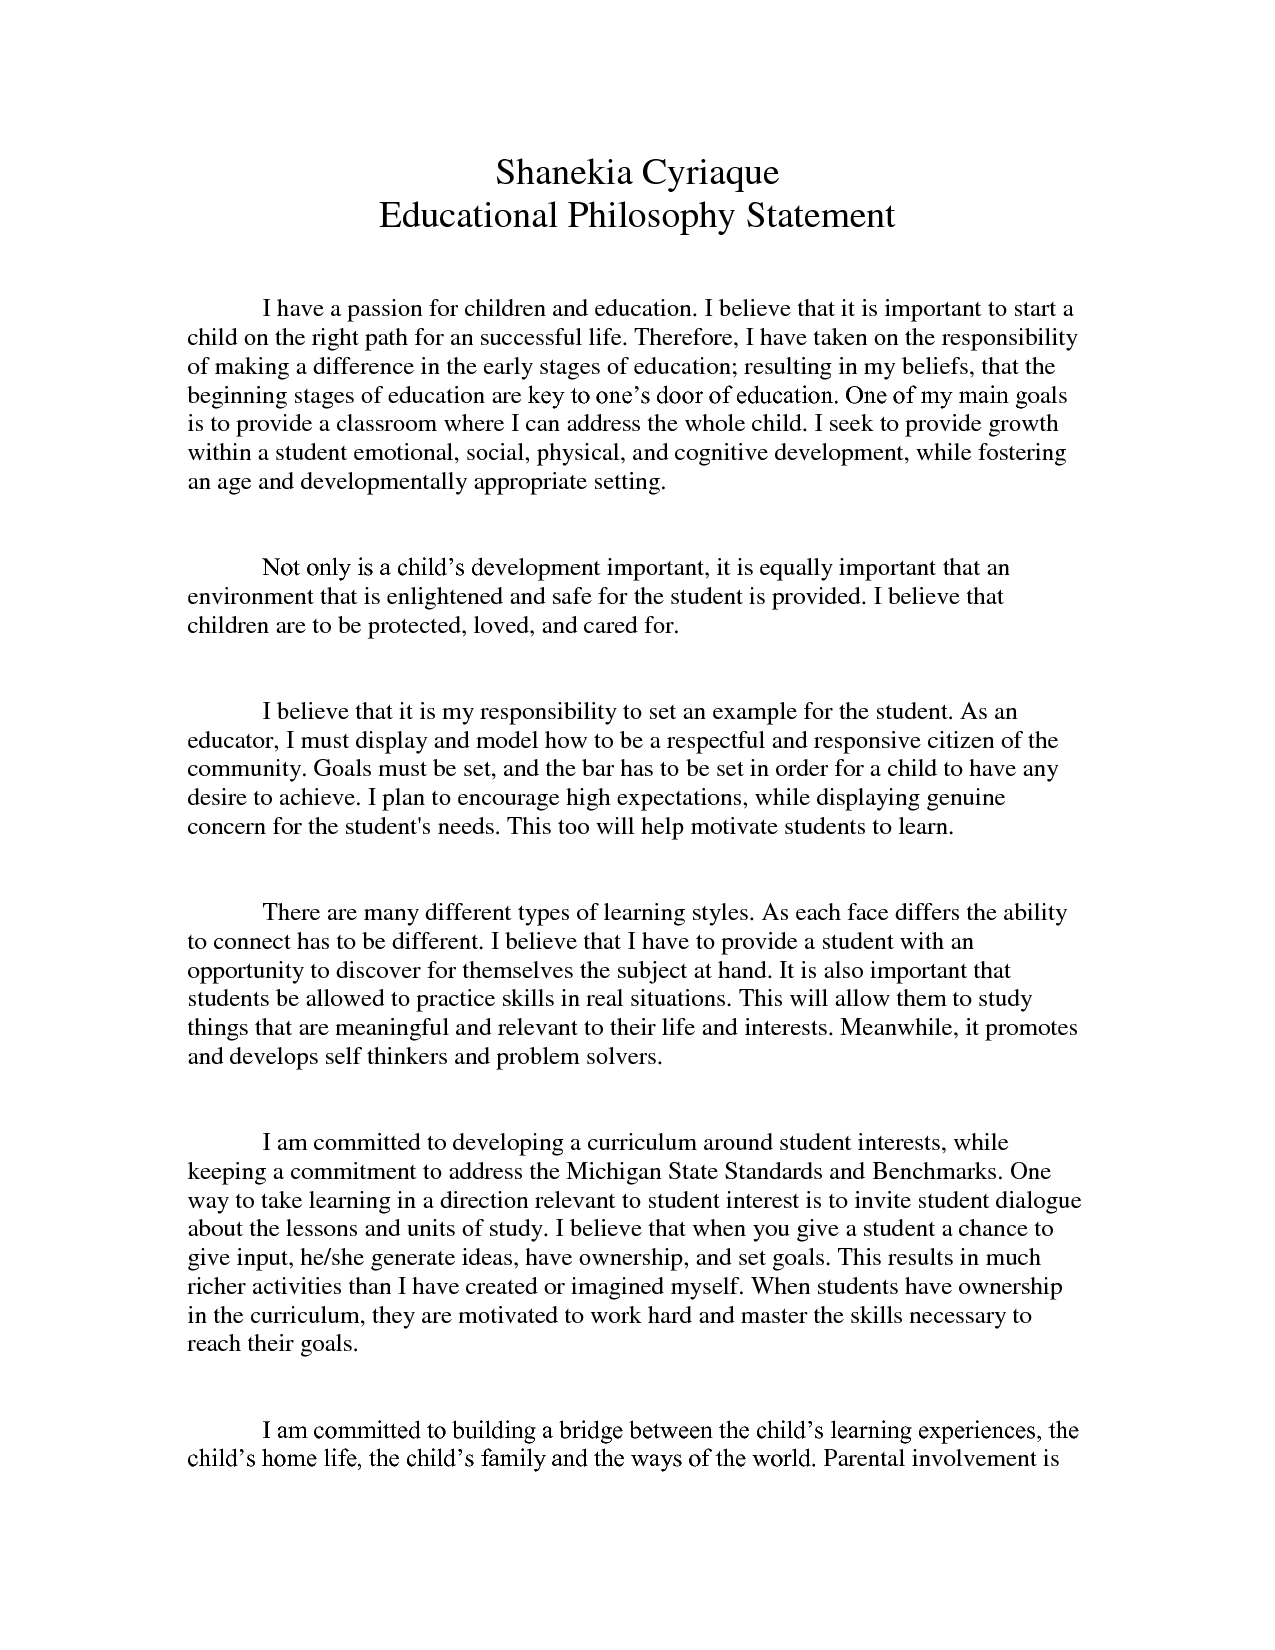 Educational Philosophy Statement Samples CDA